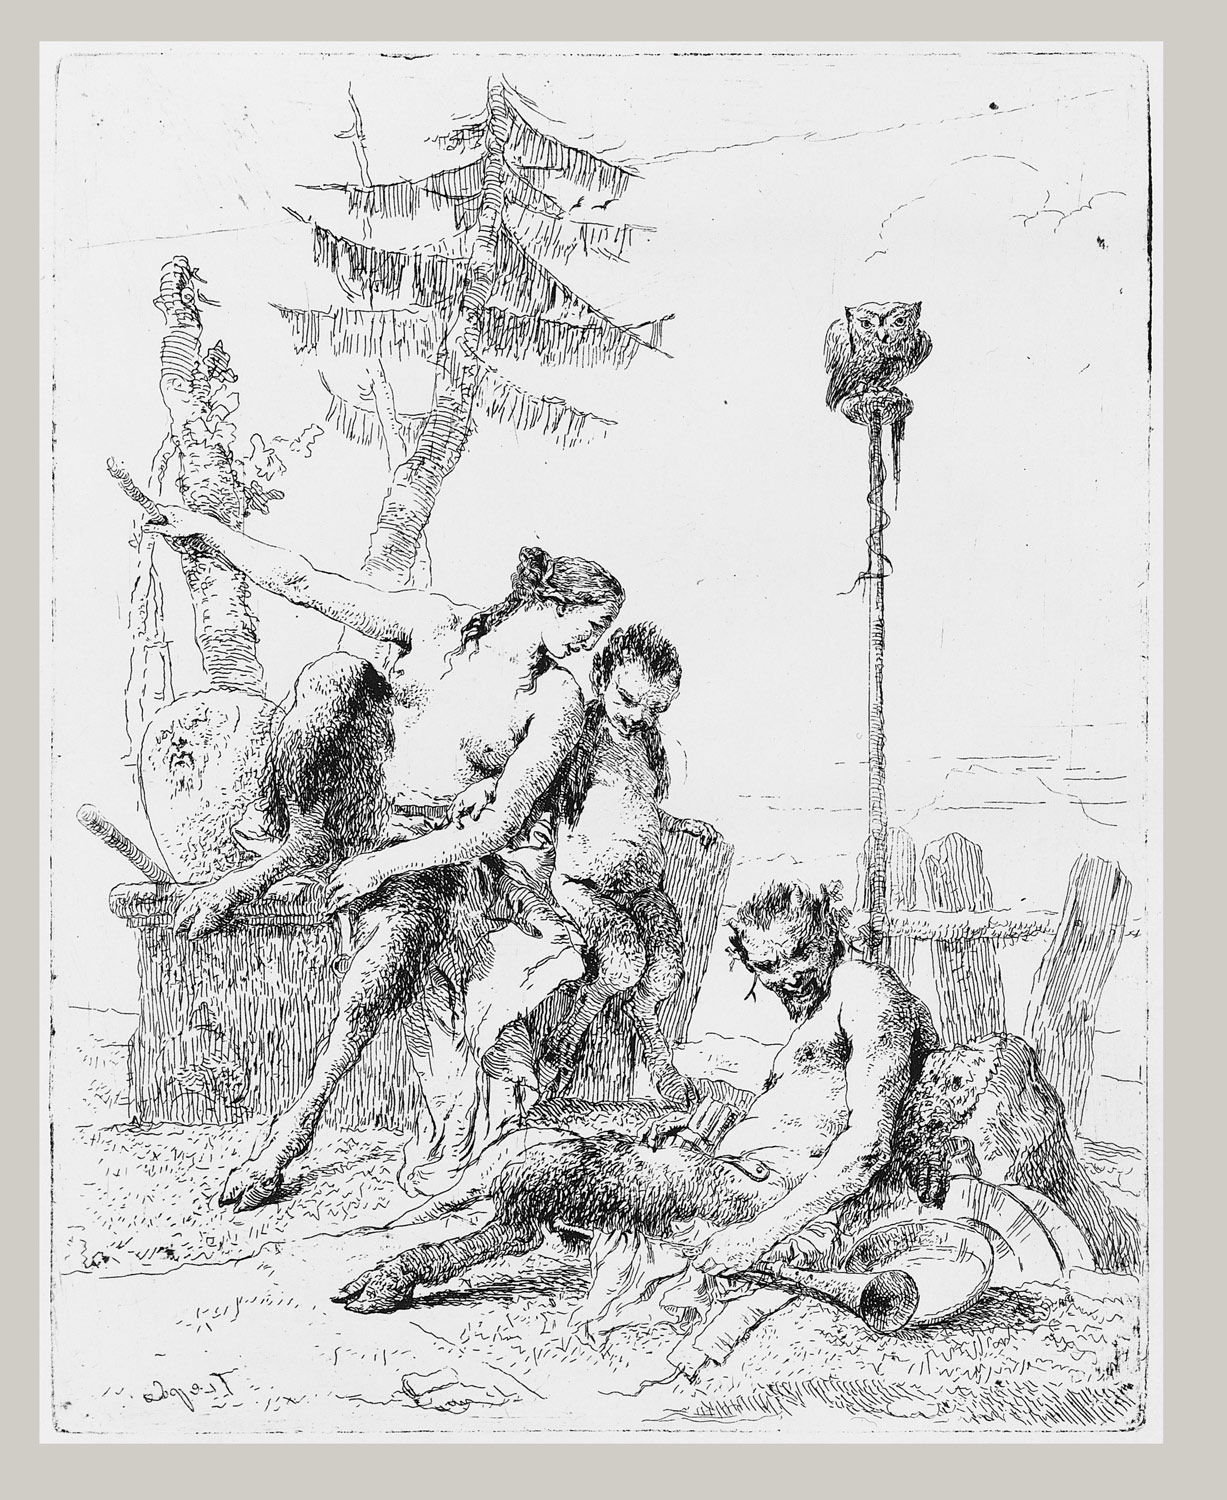 Satyr Family (Pan and his Family), from the Scherzi